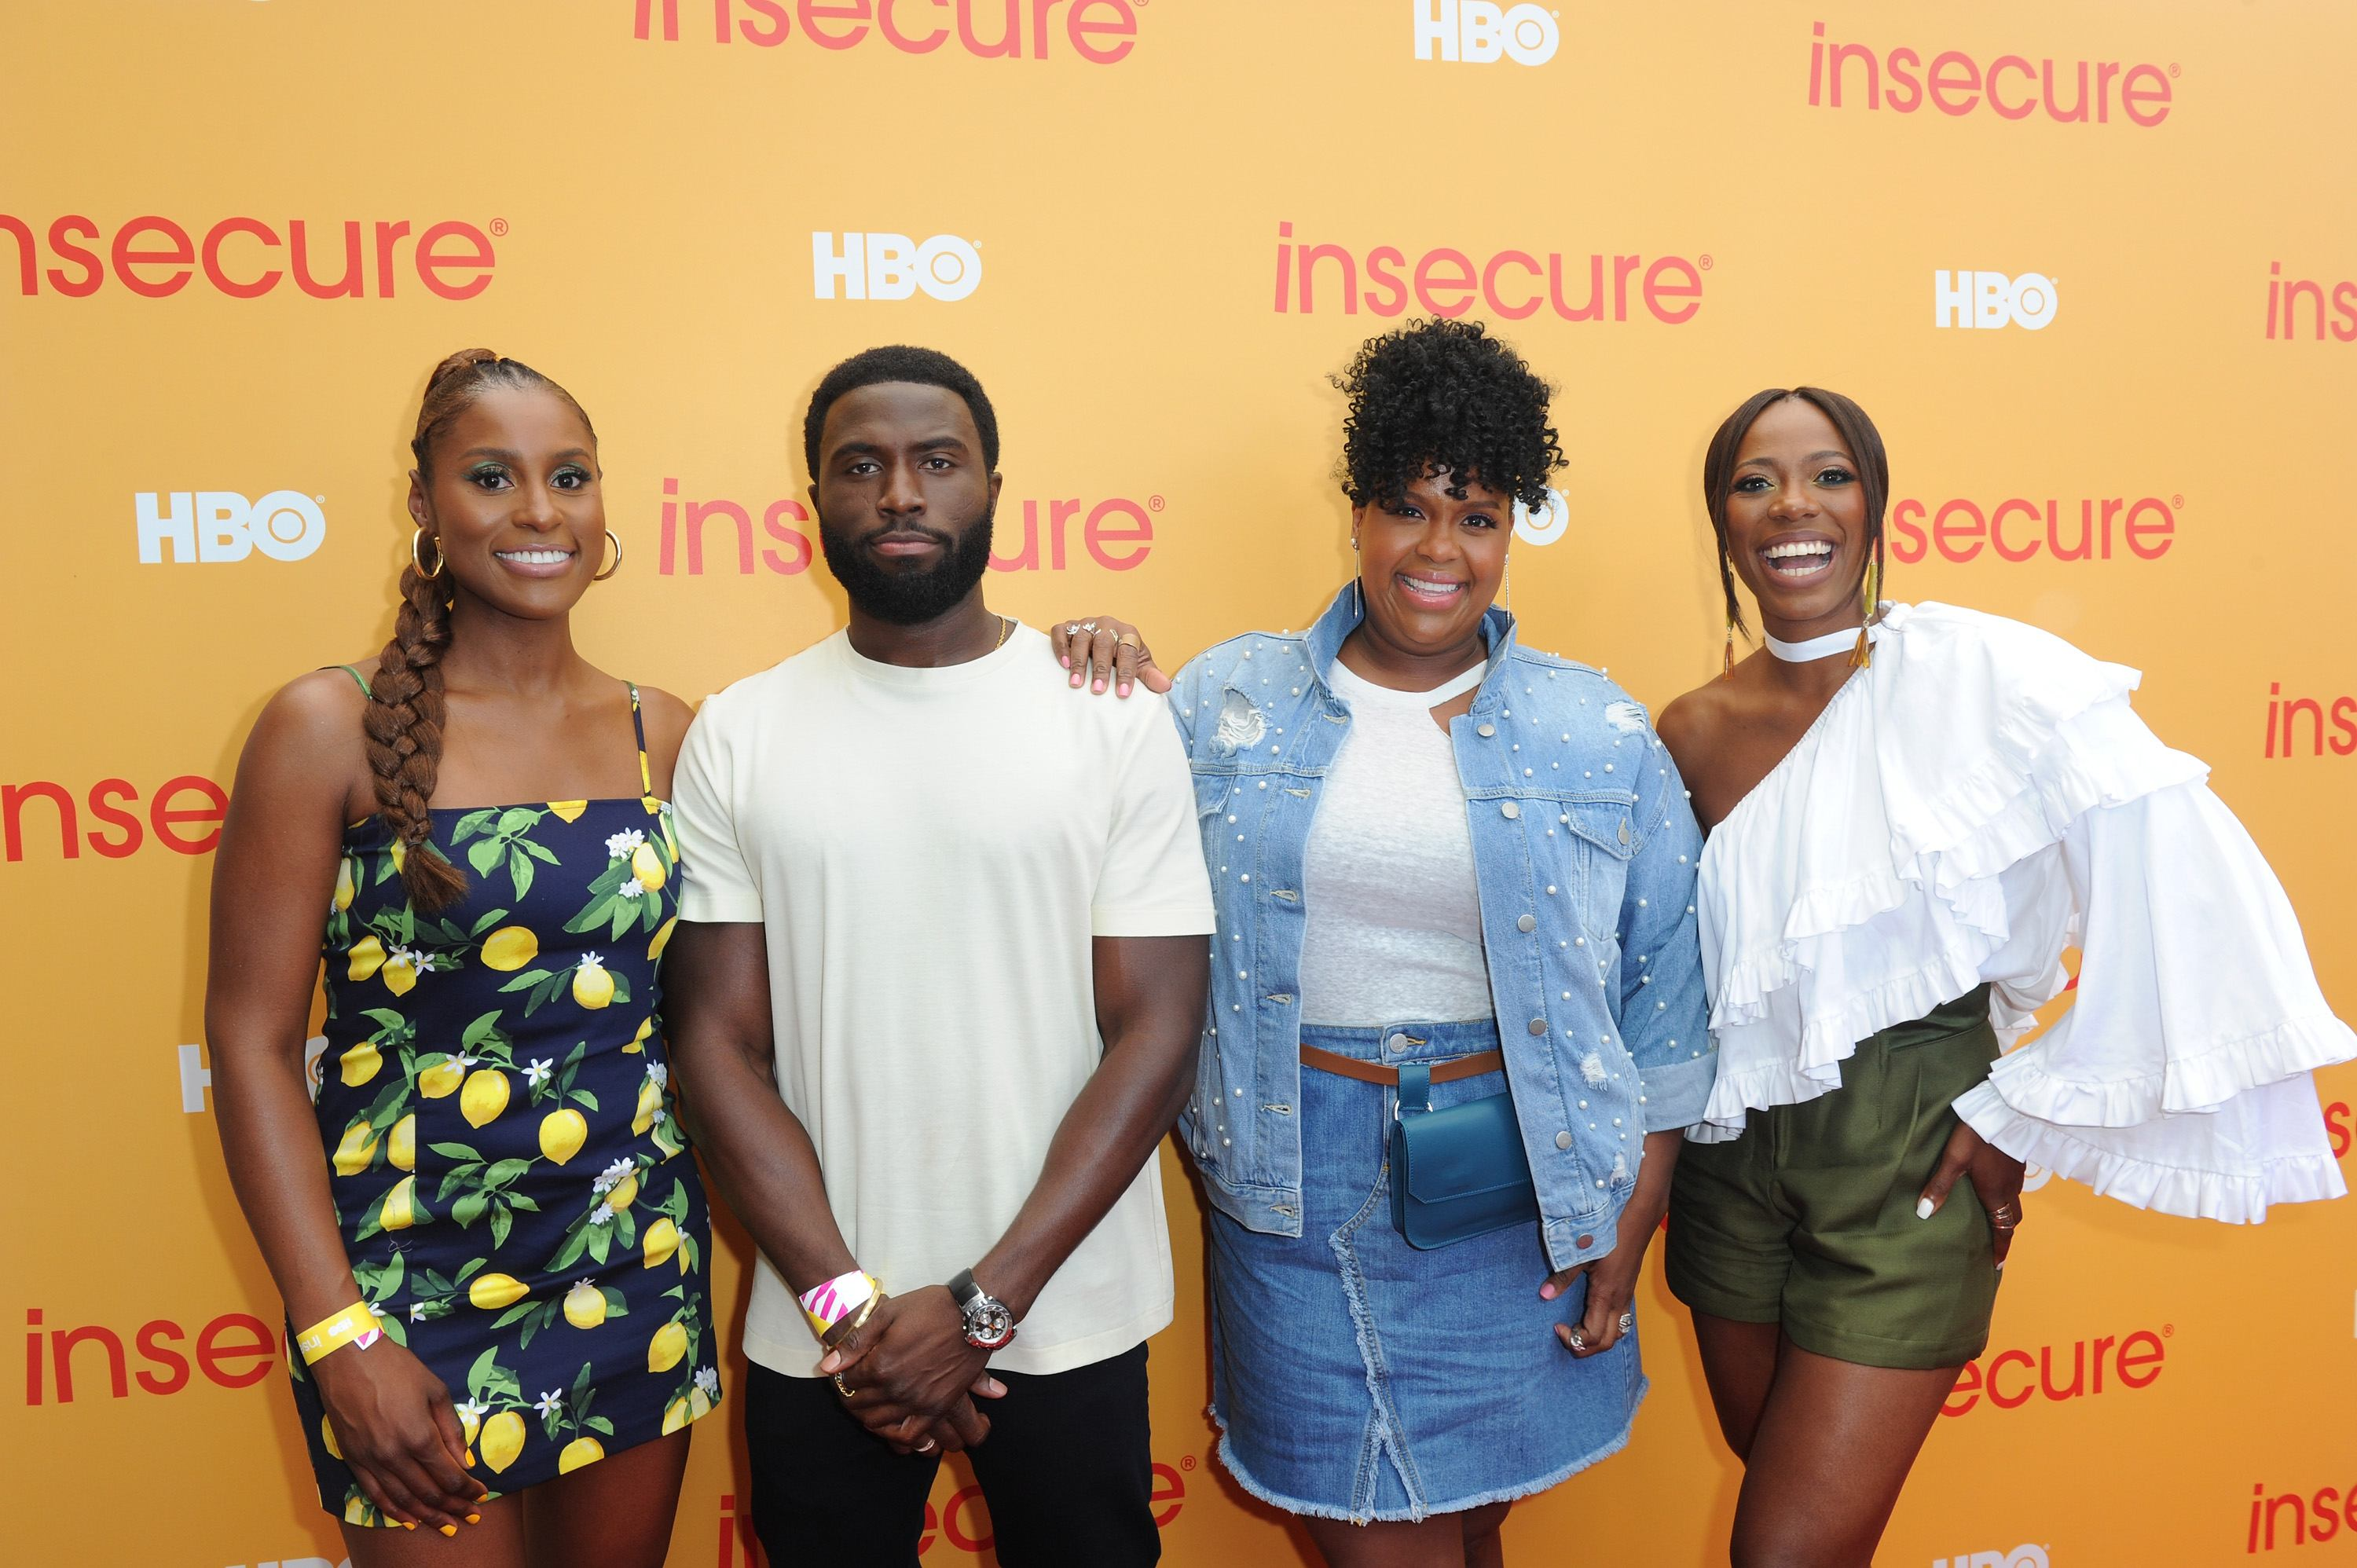 Insecure Has Been Renewed For A Fourth Season!